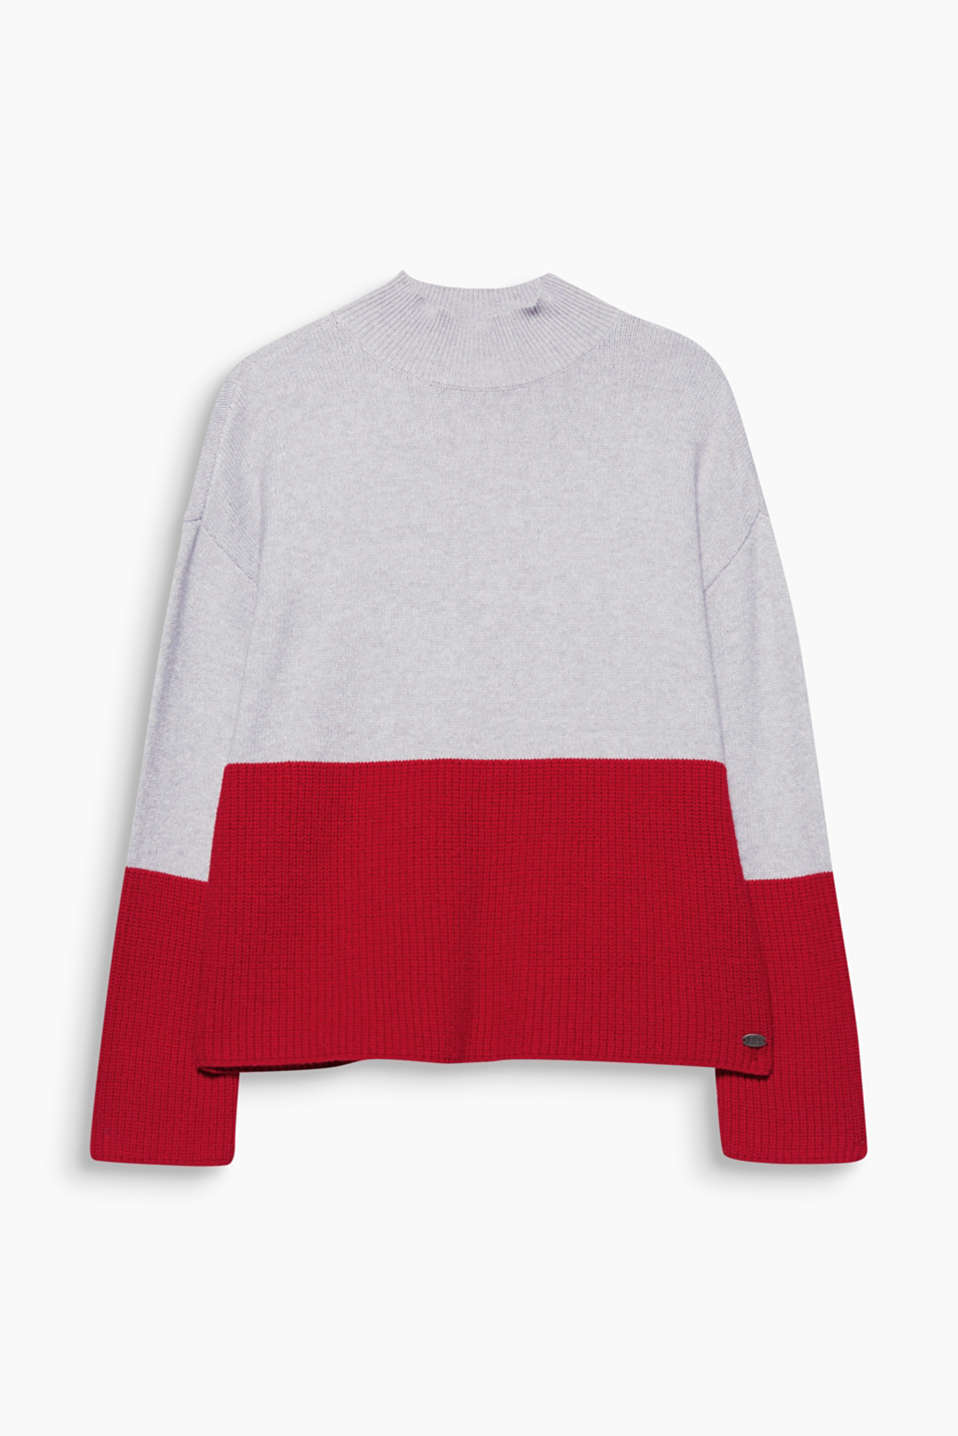 This boxy short jumper in fine and rib knit with colour block details features fashionable accents!